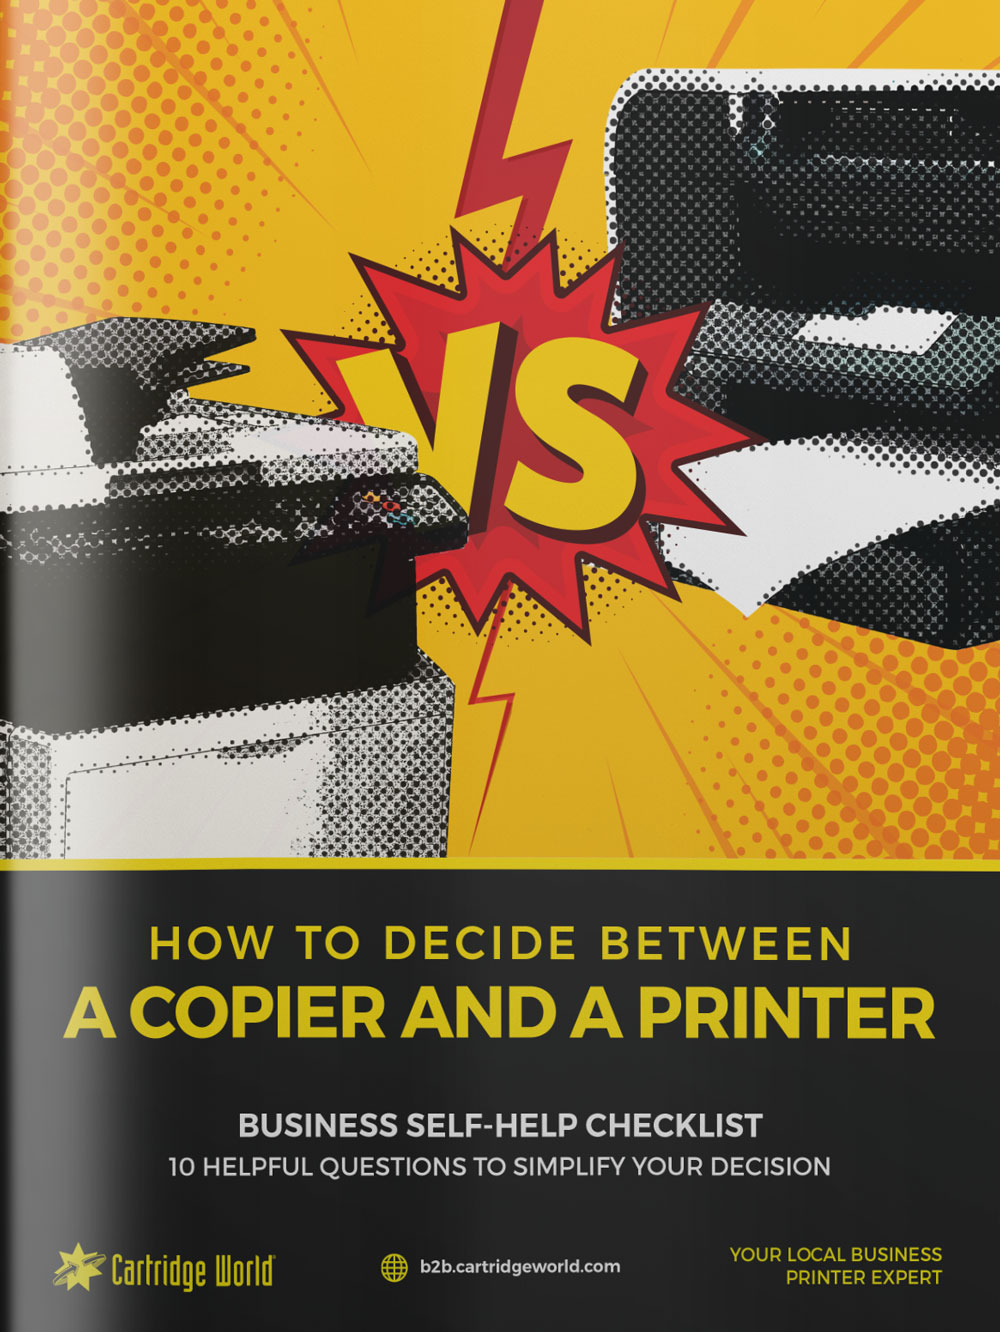 How-_to_Decide_Between_a_Copier_and_a_Printer